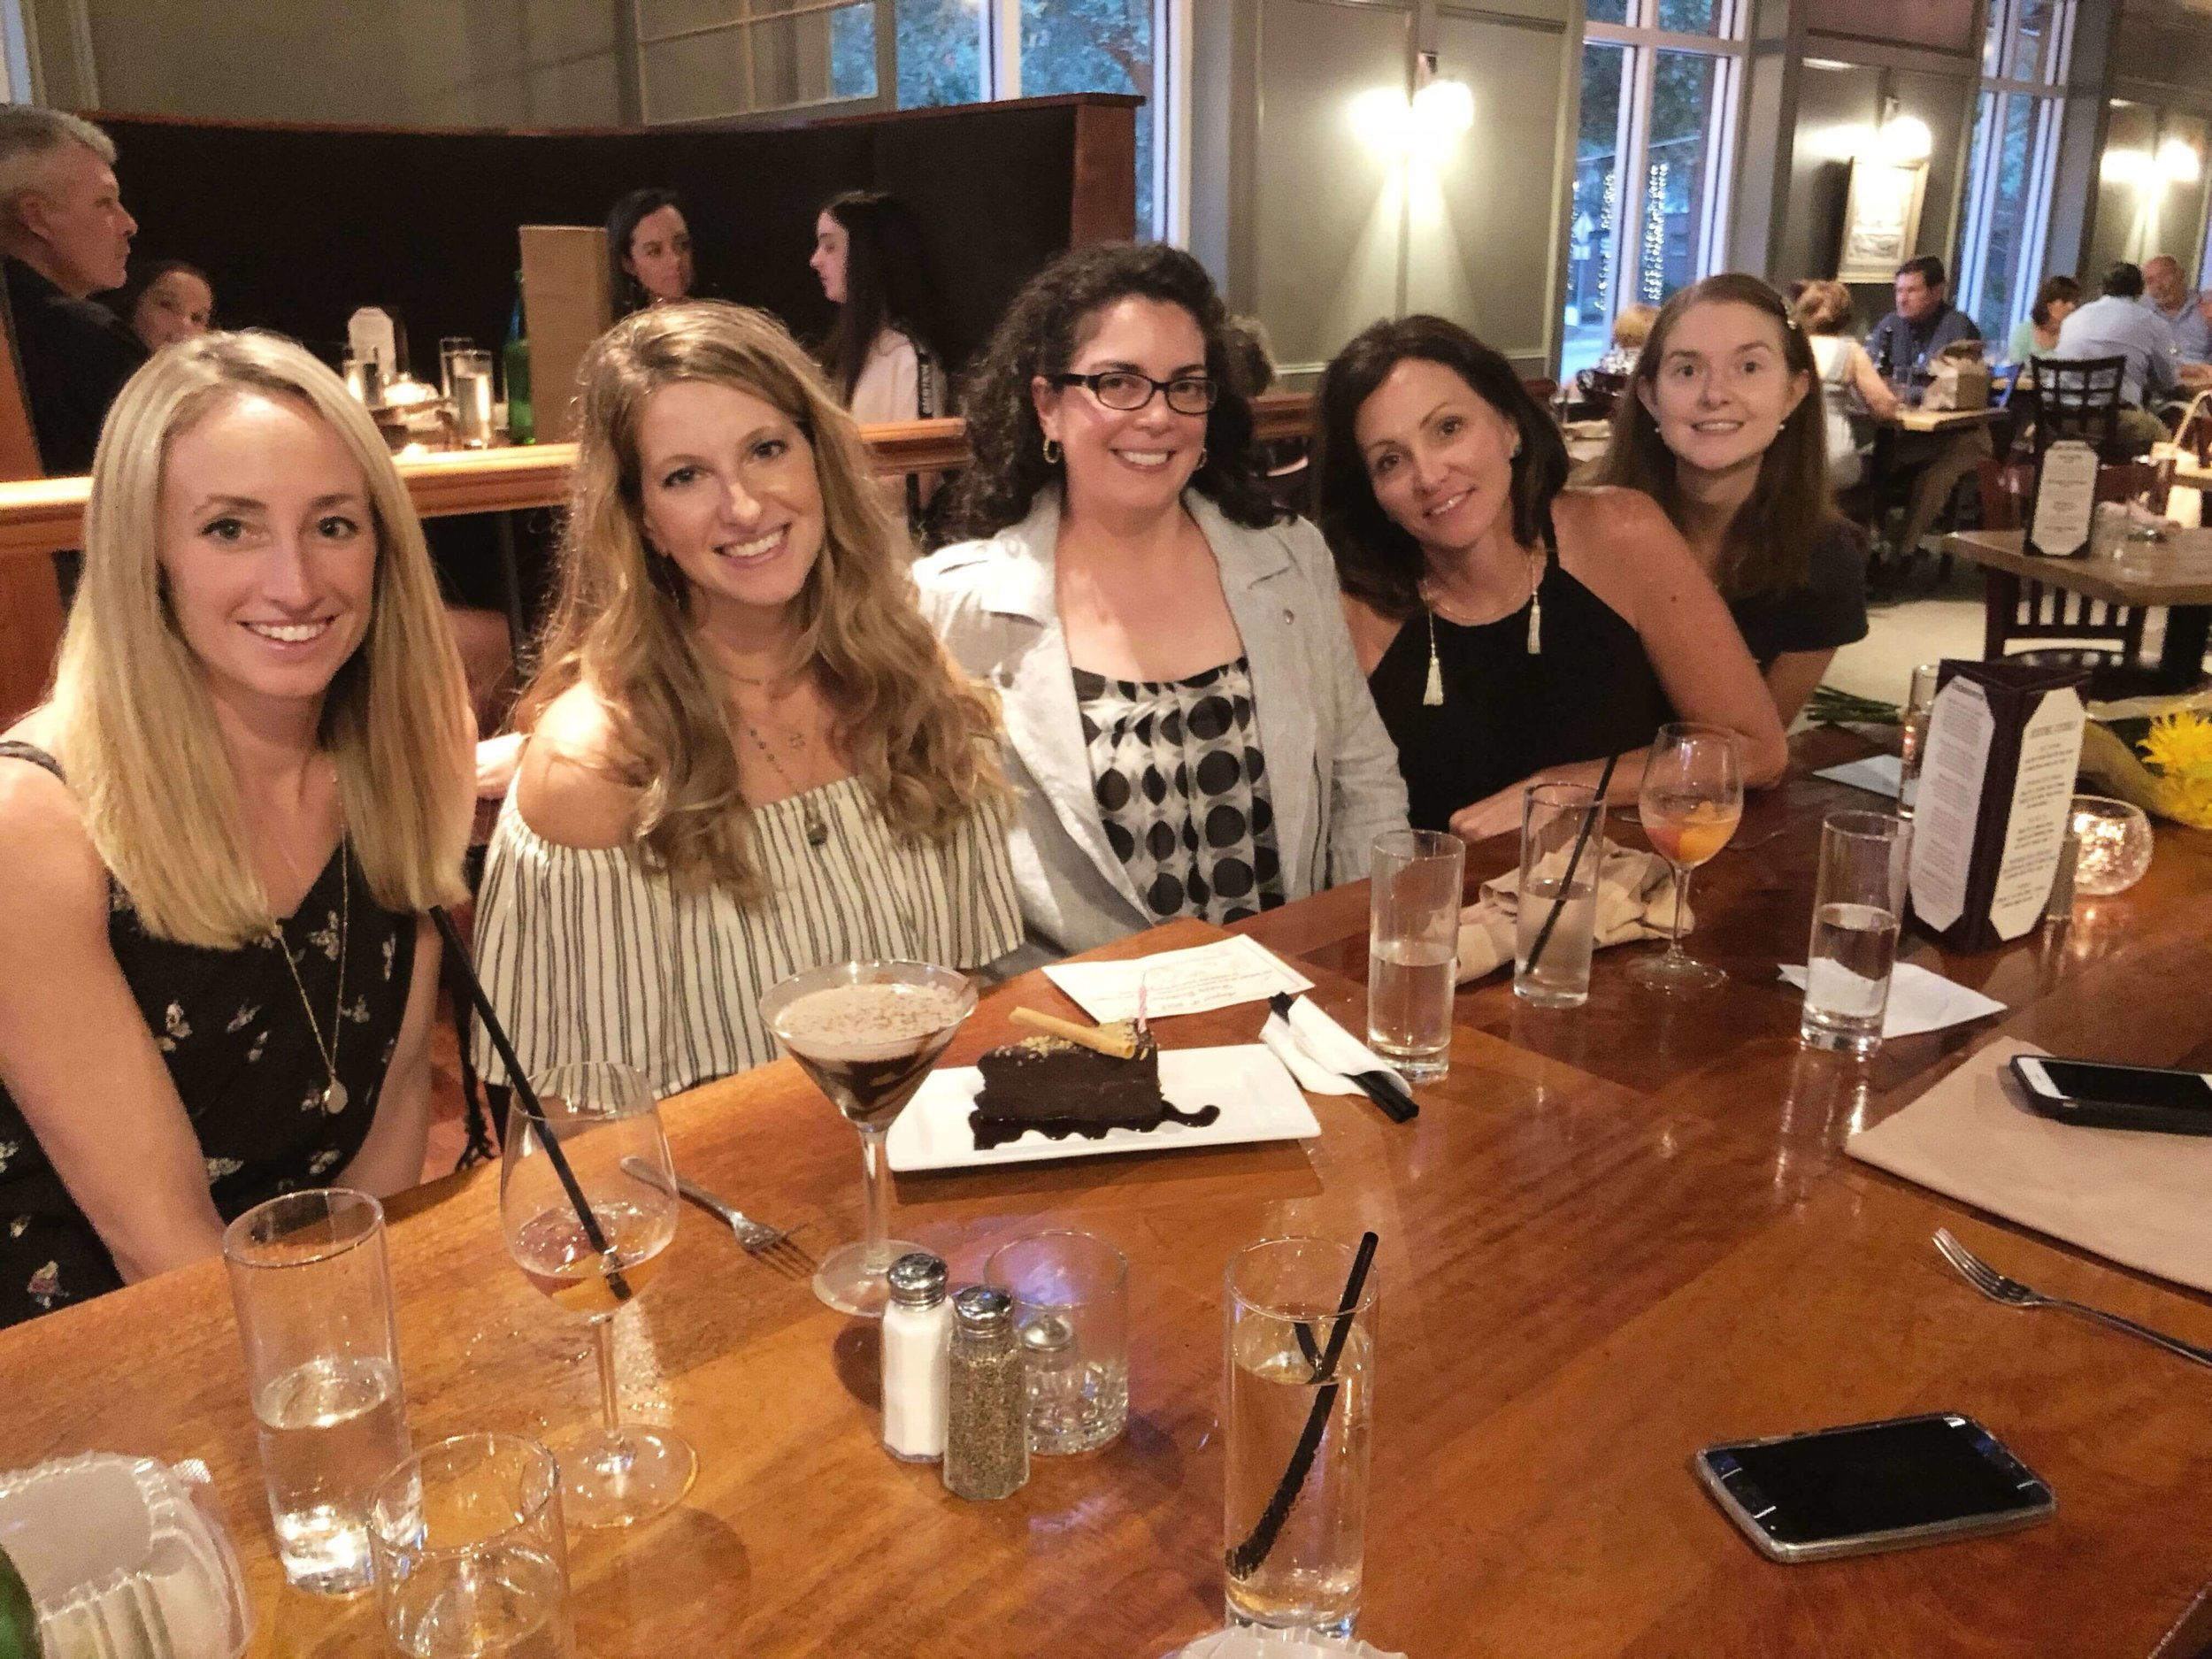 Girls night out at Crave